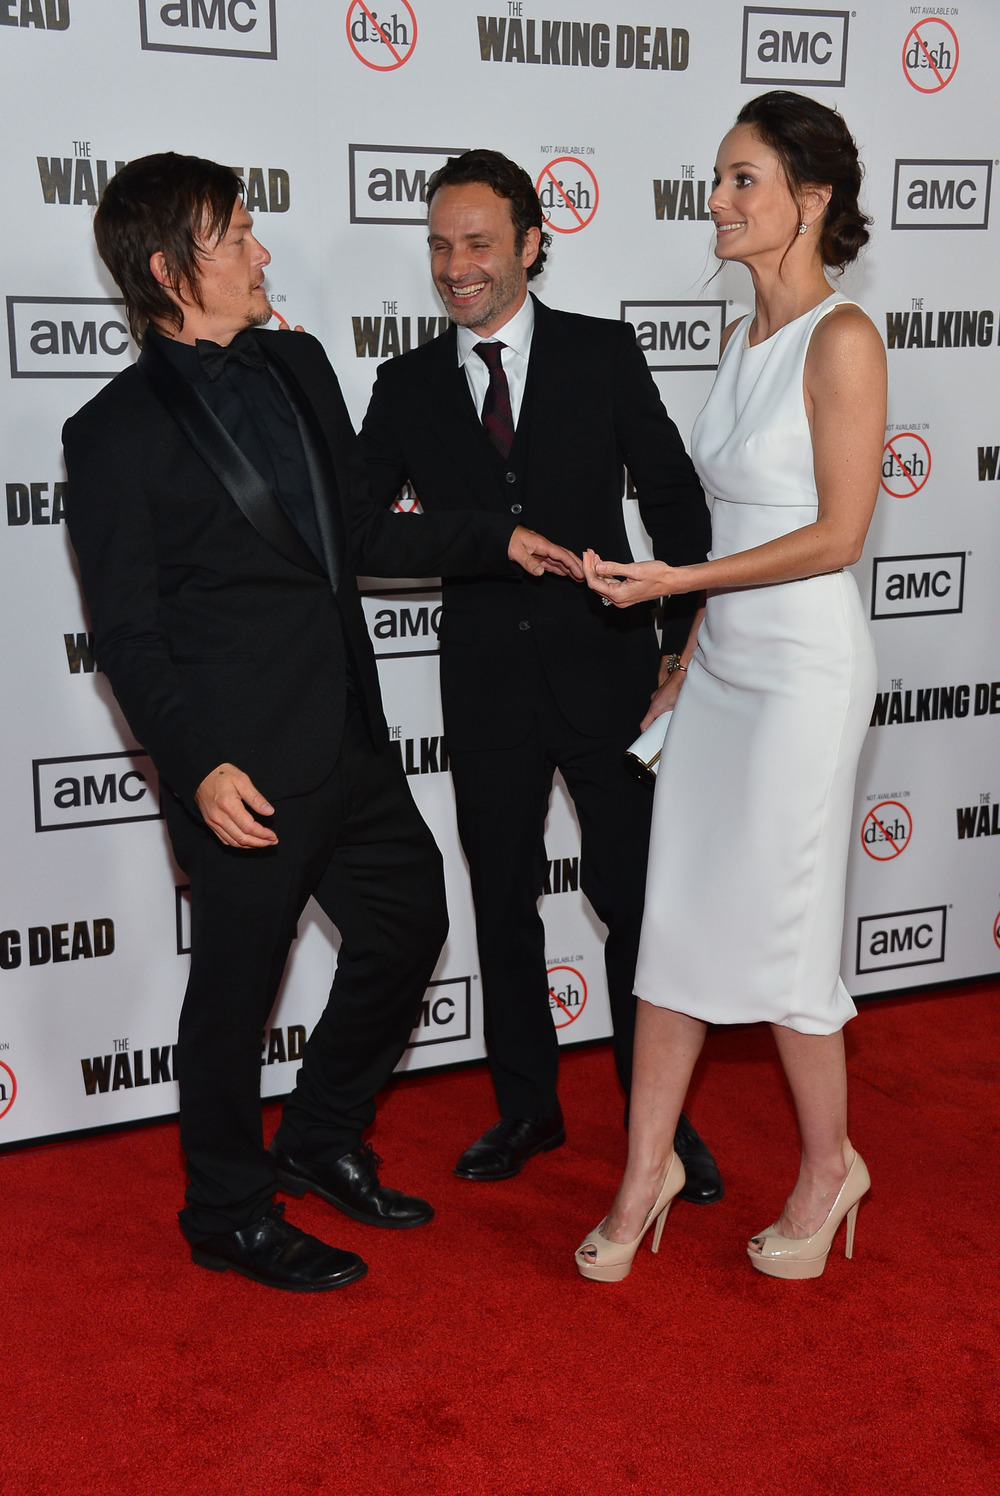 Andrew Lincoln Reveals Best Part of The Walking Dead: Norman Reedus!